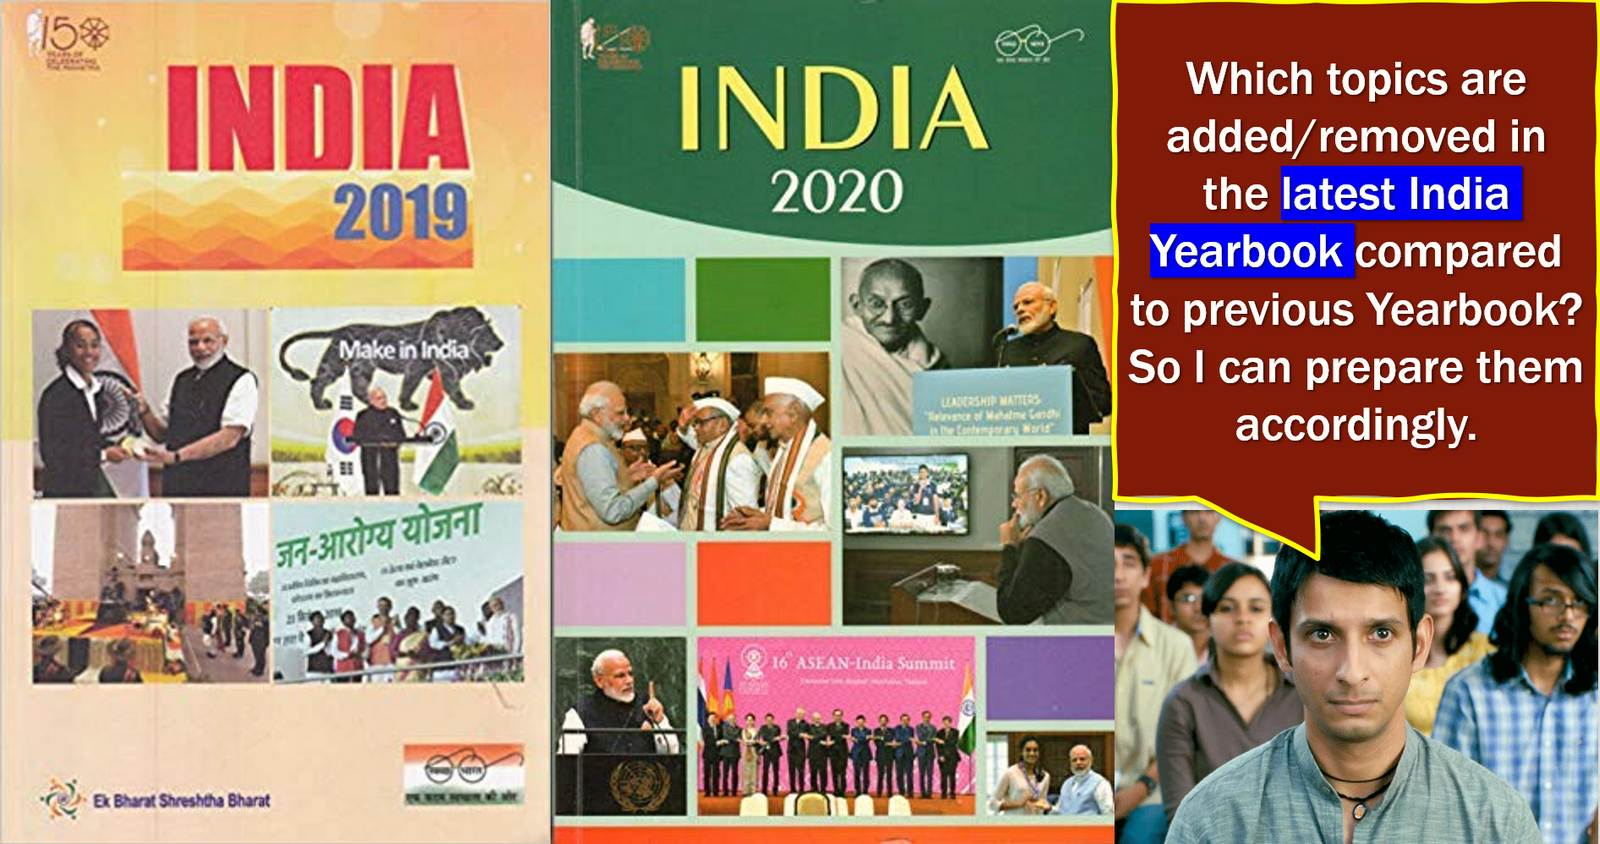 ndia Yearbook 2020 for UPSC worth upgrade?